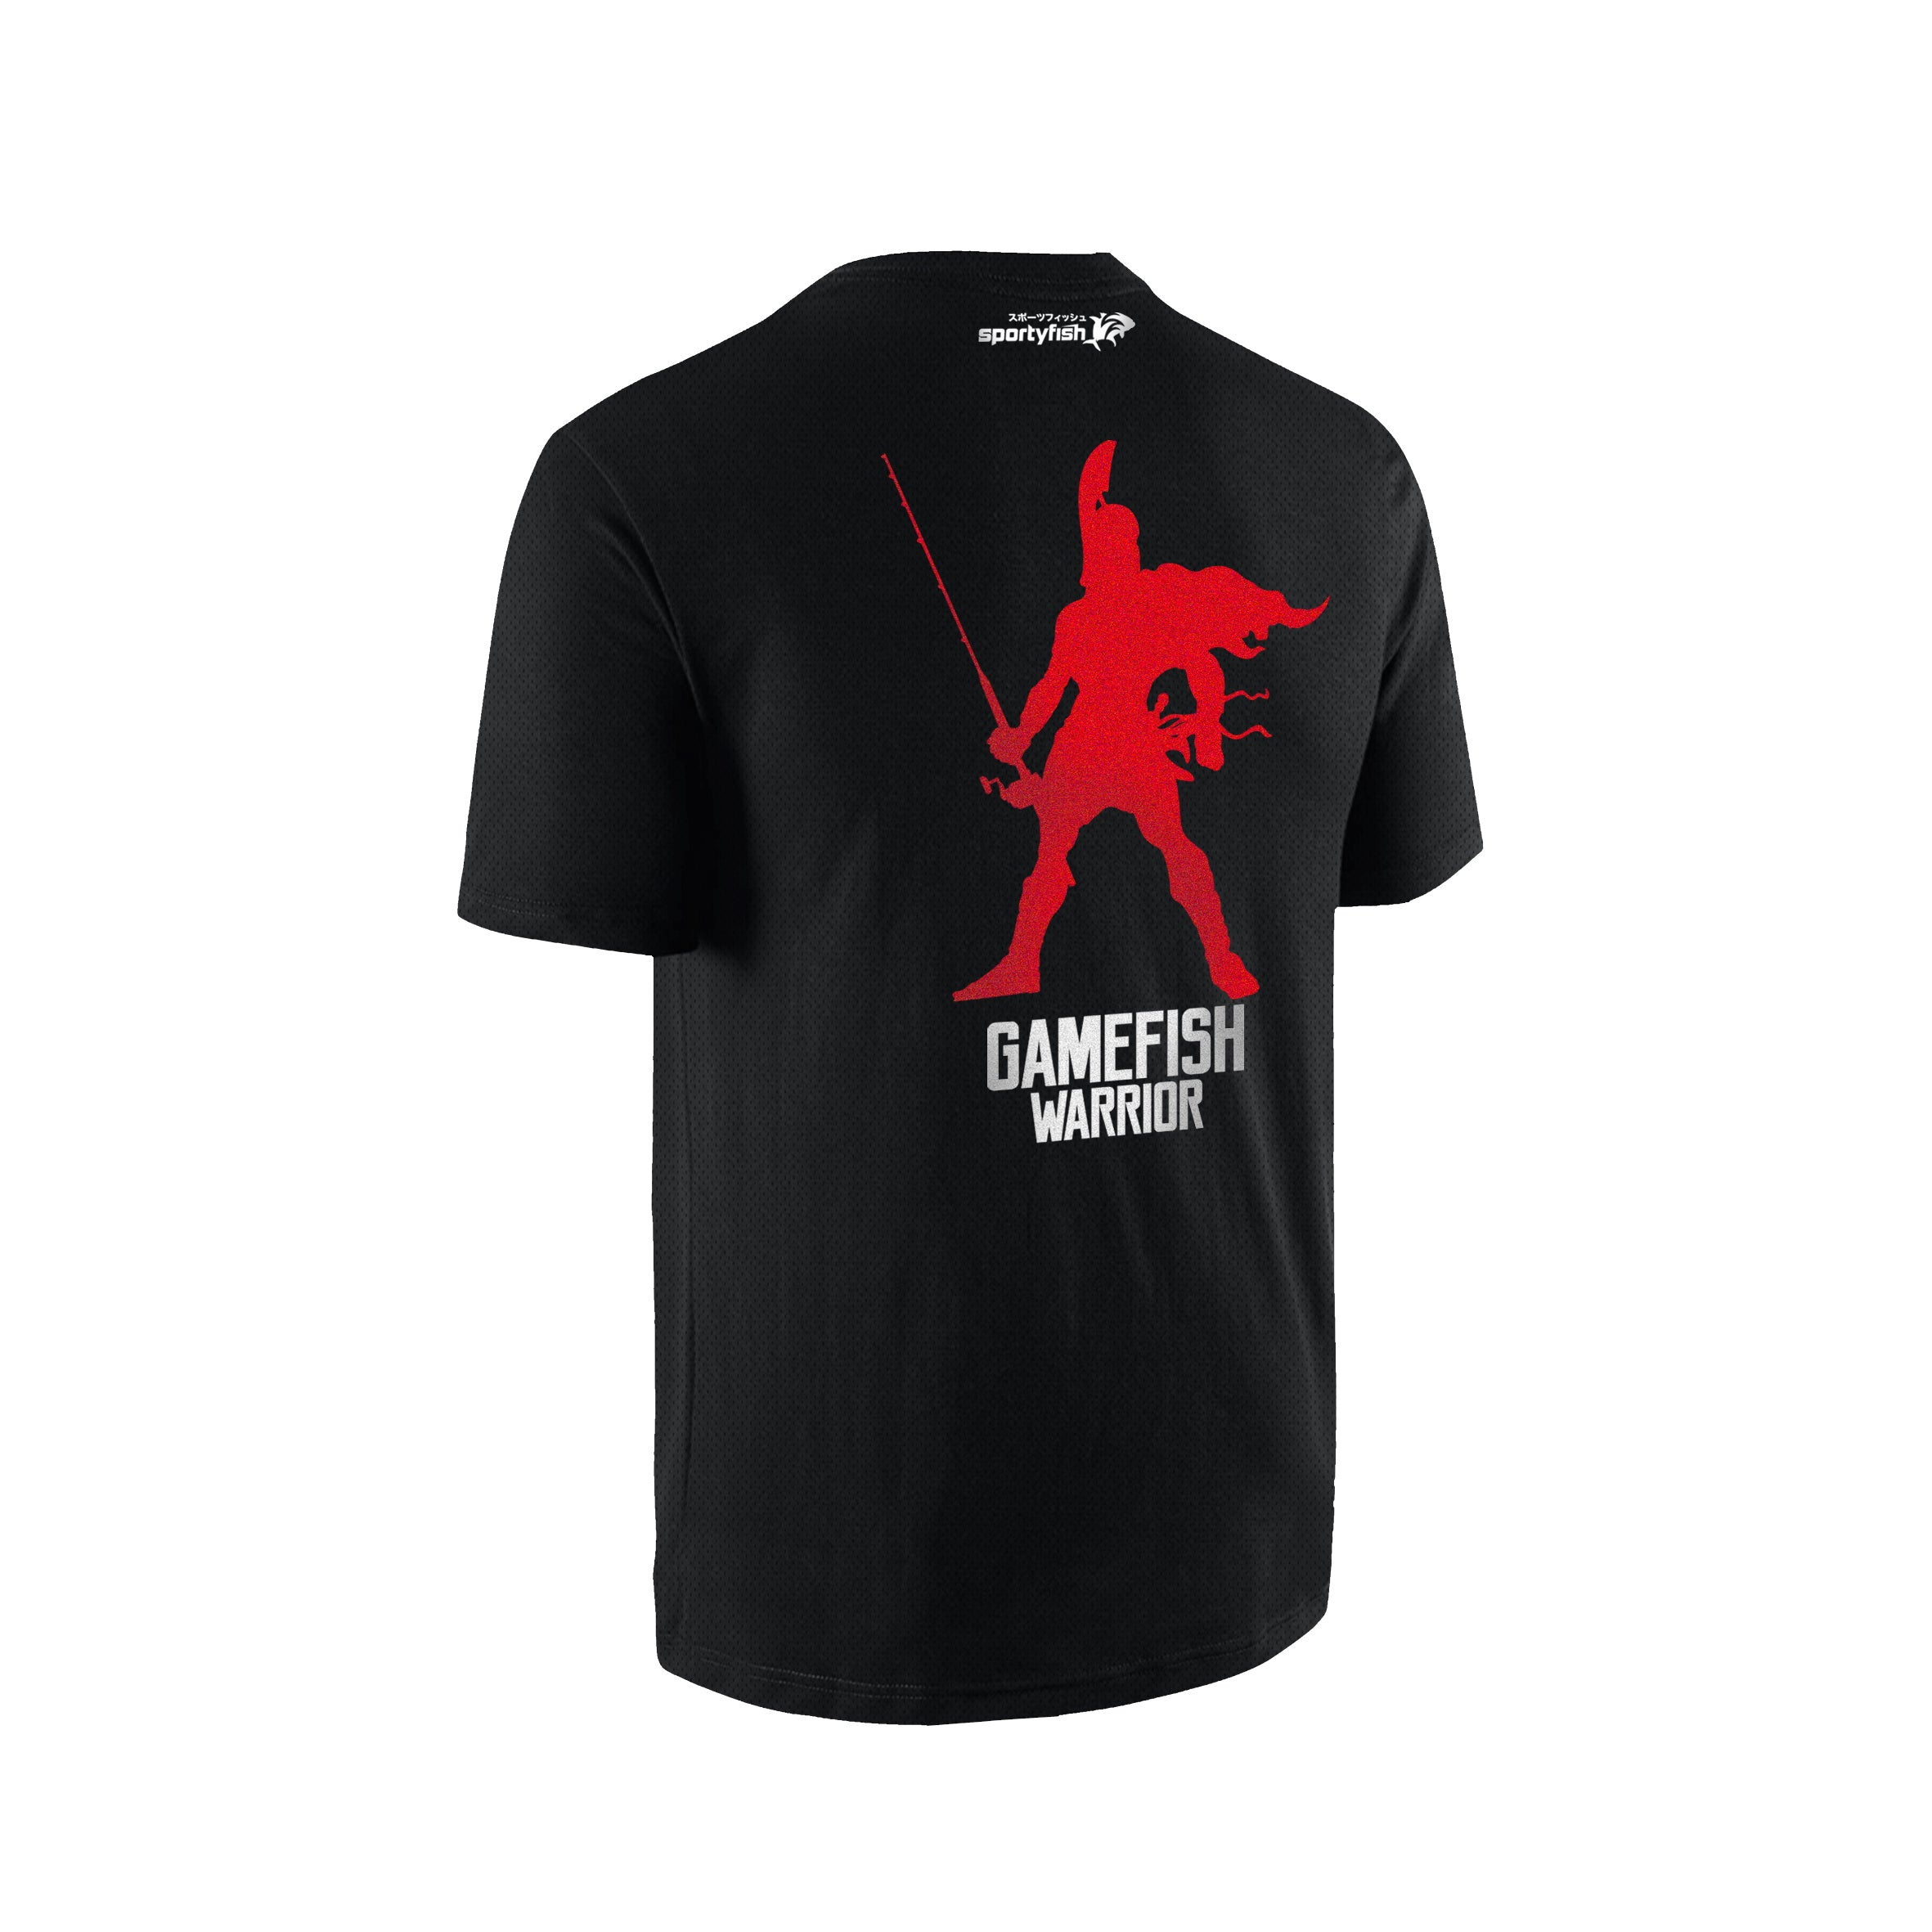 SportyFish GameFish Warrior Series T-shirt(back view): The Rod